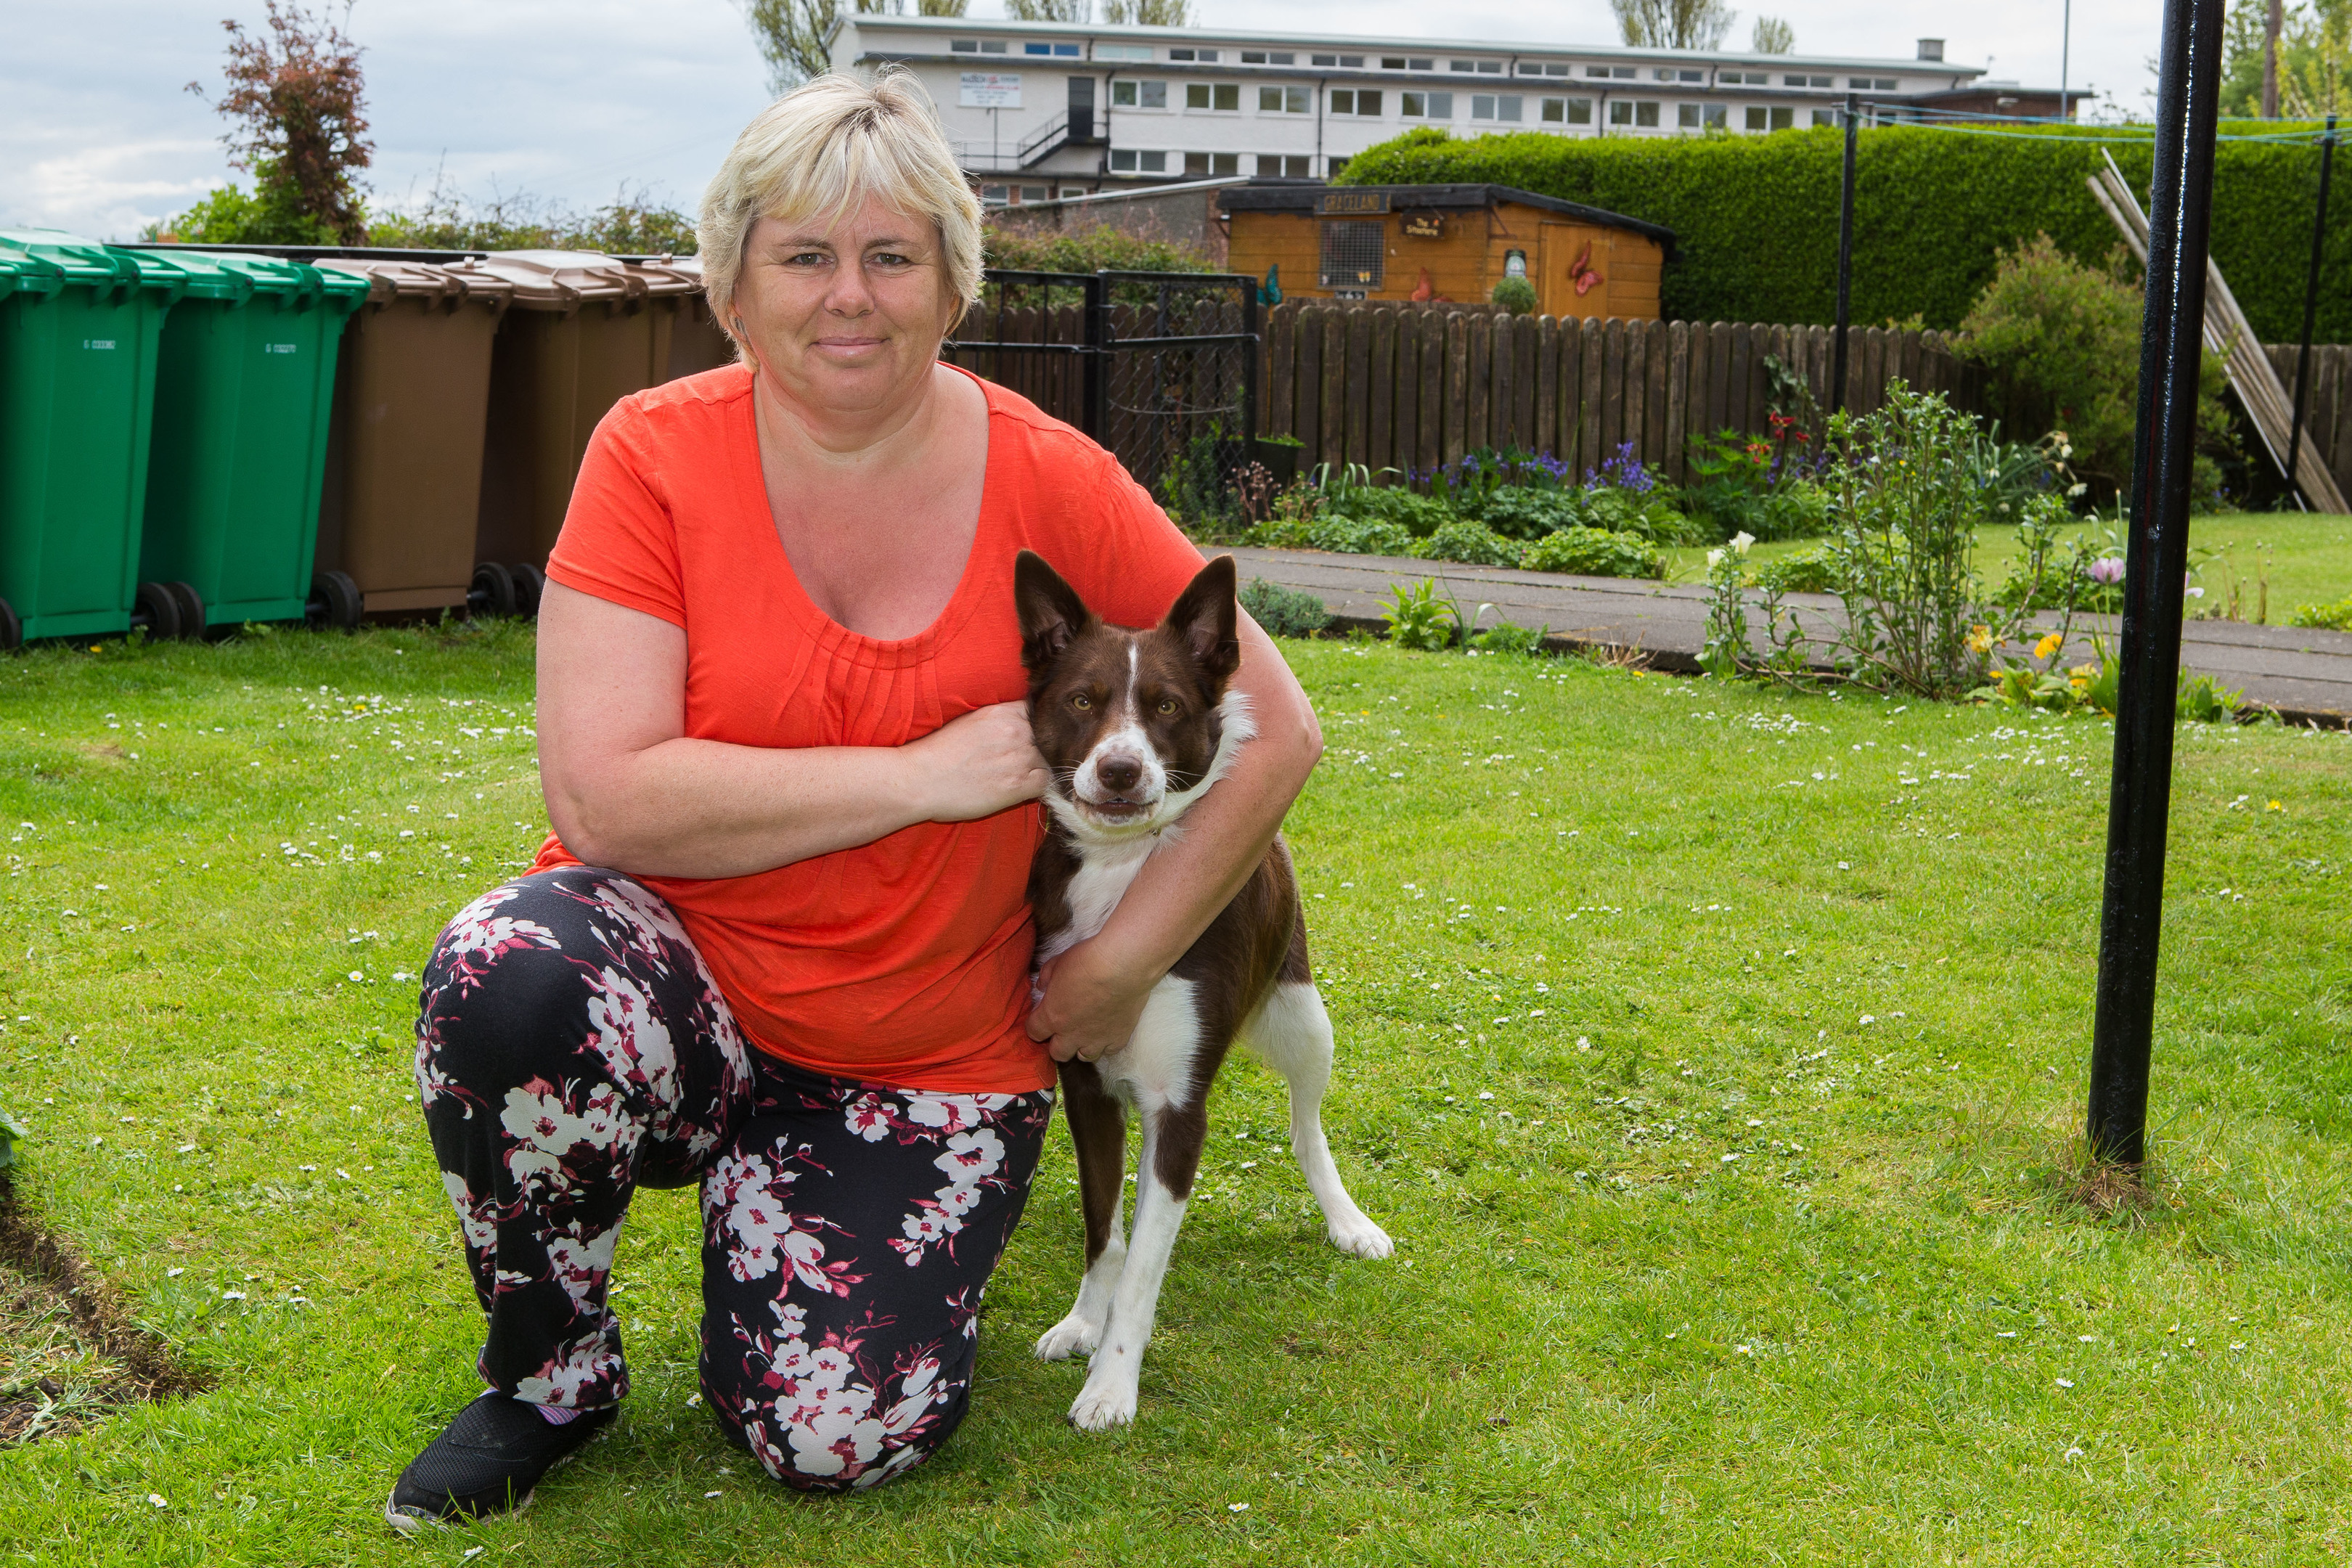 Lorraine Turner with her dog Willow.